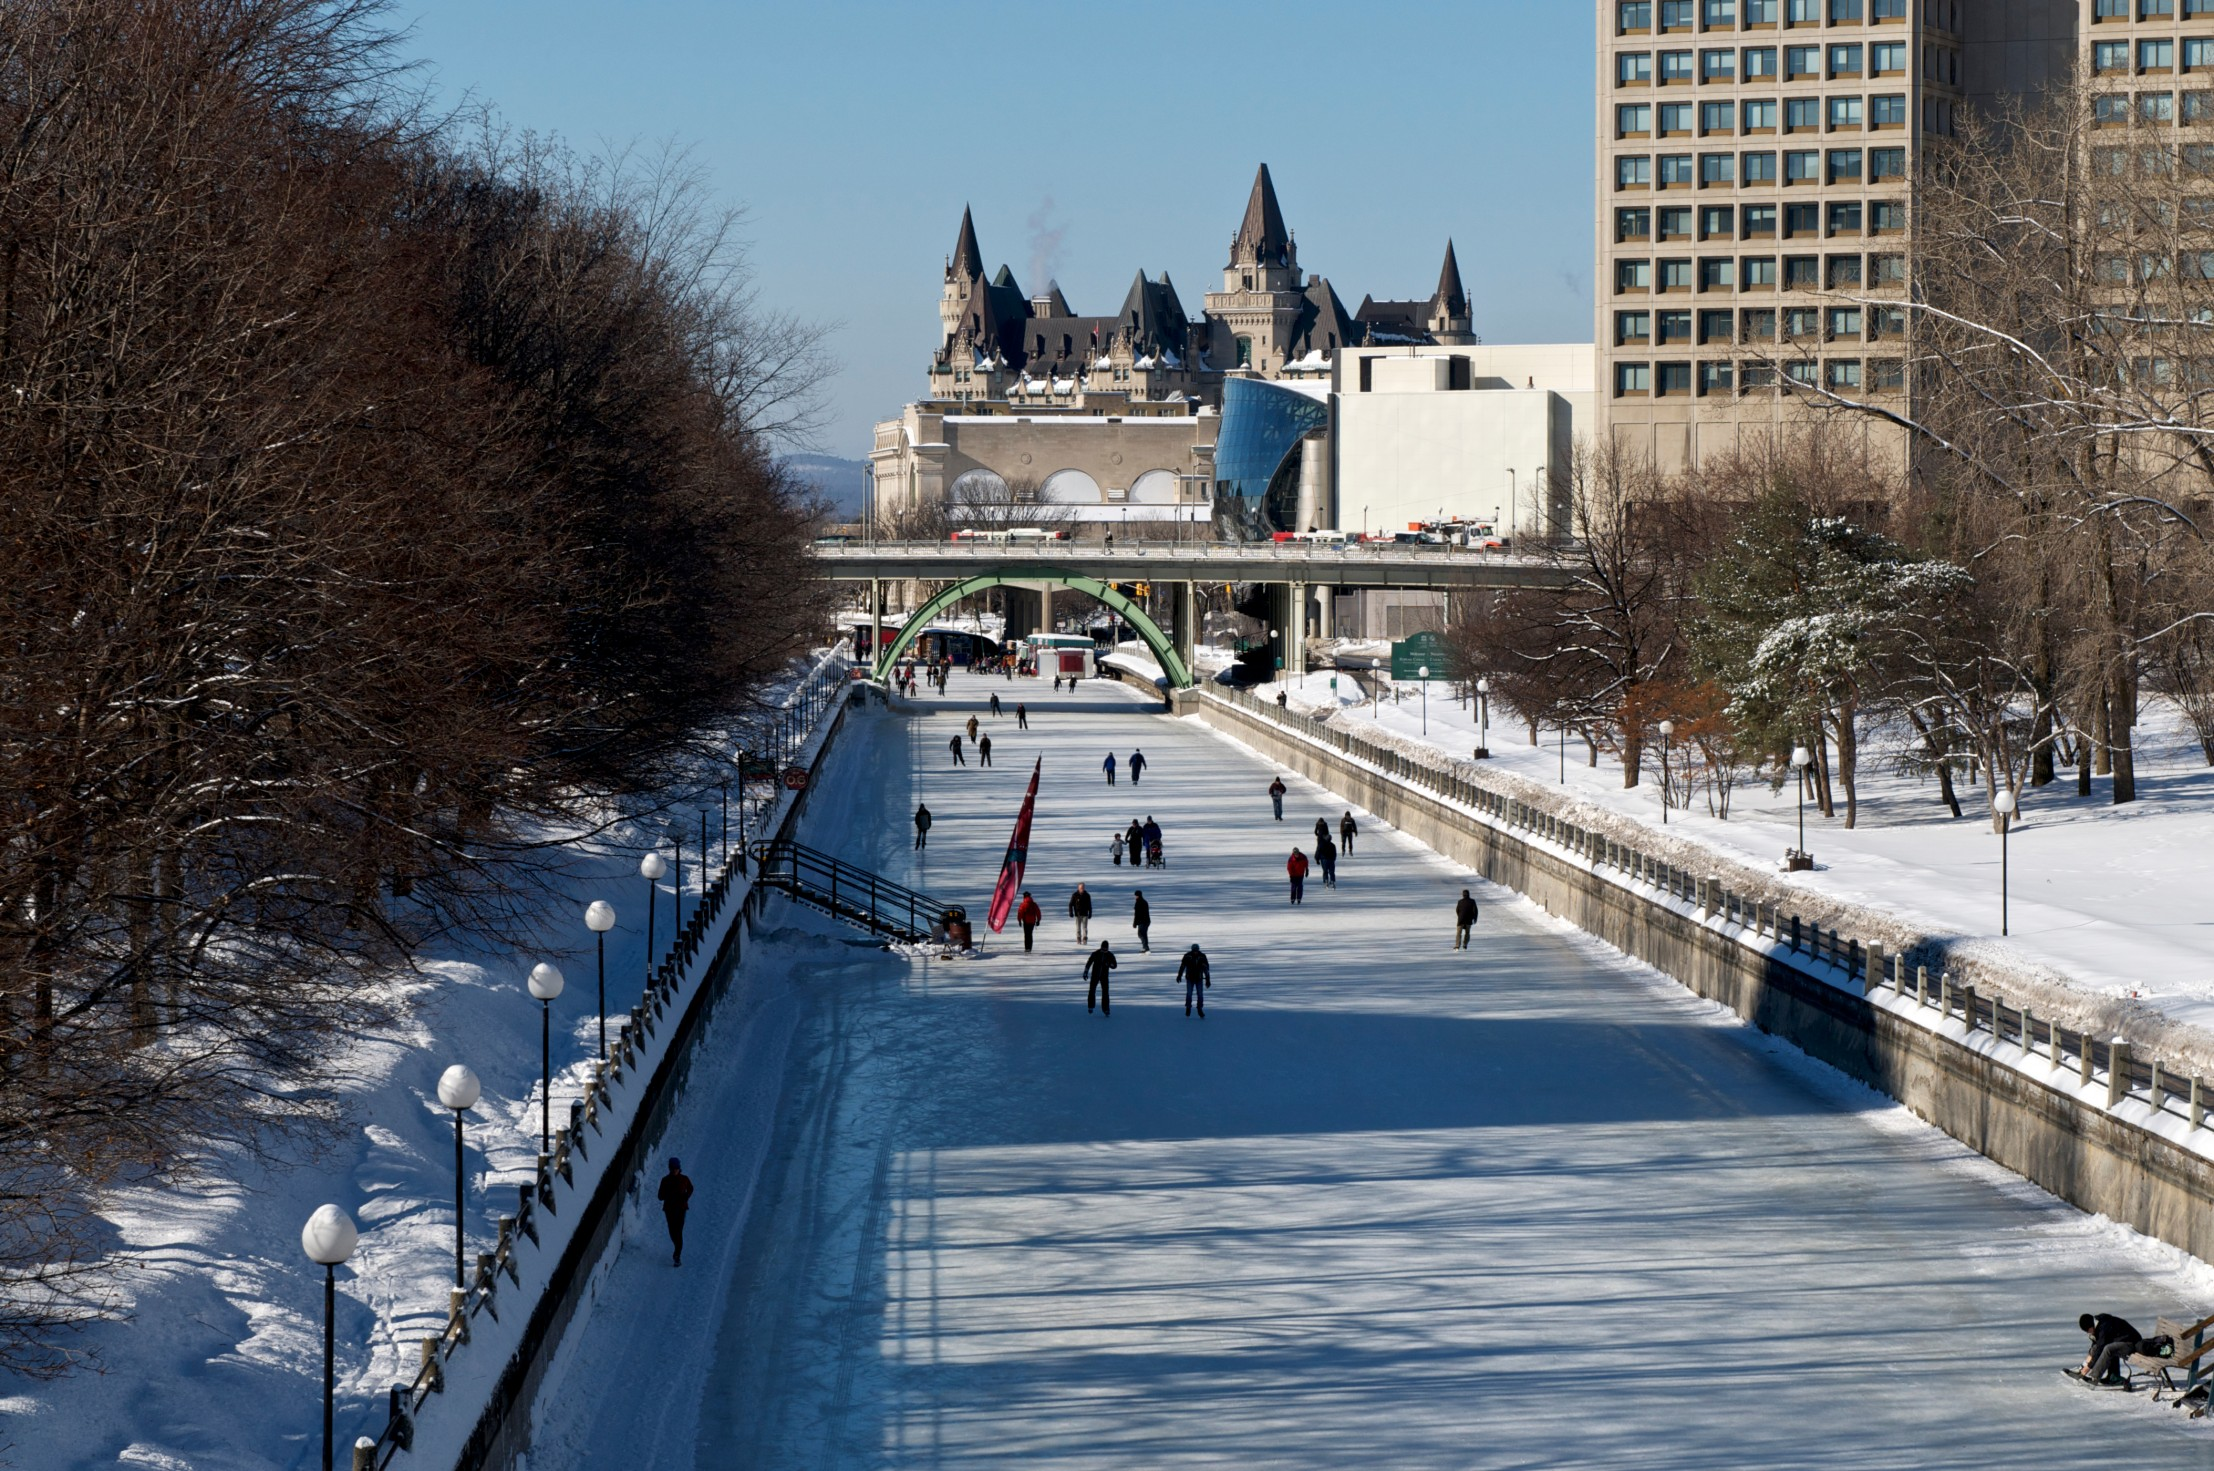 patin-glace-canal-rideau-pvt-canada